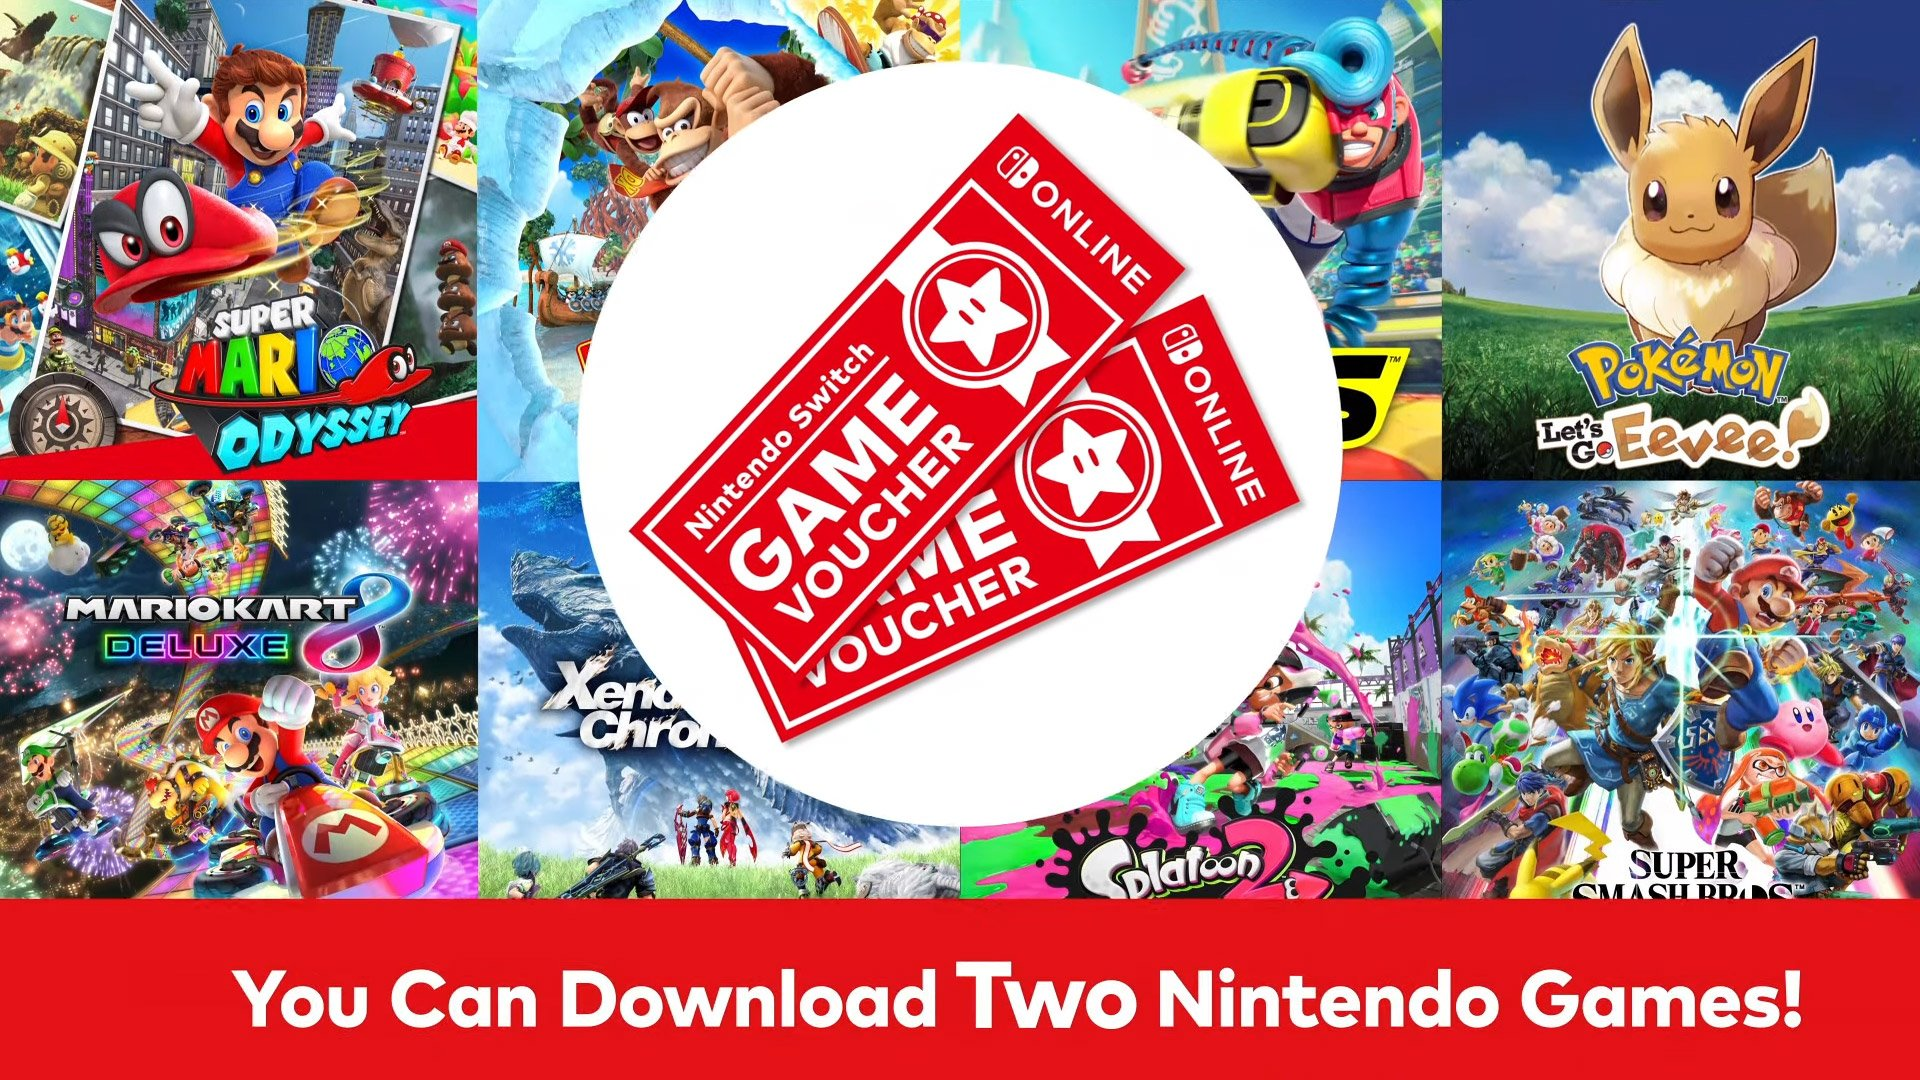 Nintendo Switch Game Vouchers are a curious new way to save money screenshot